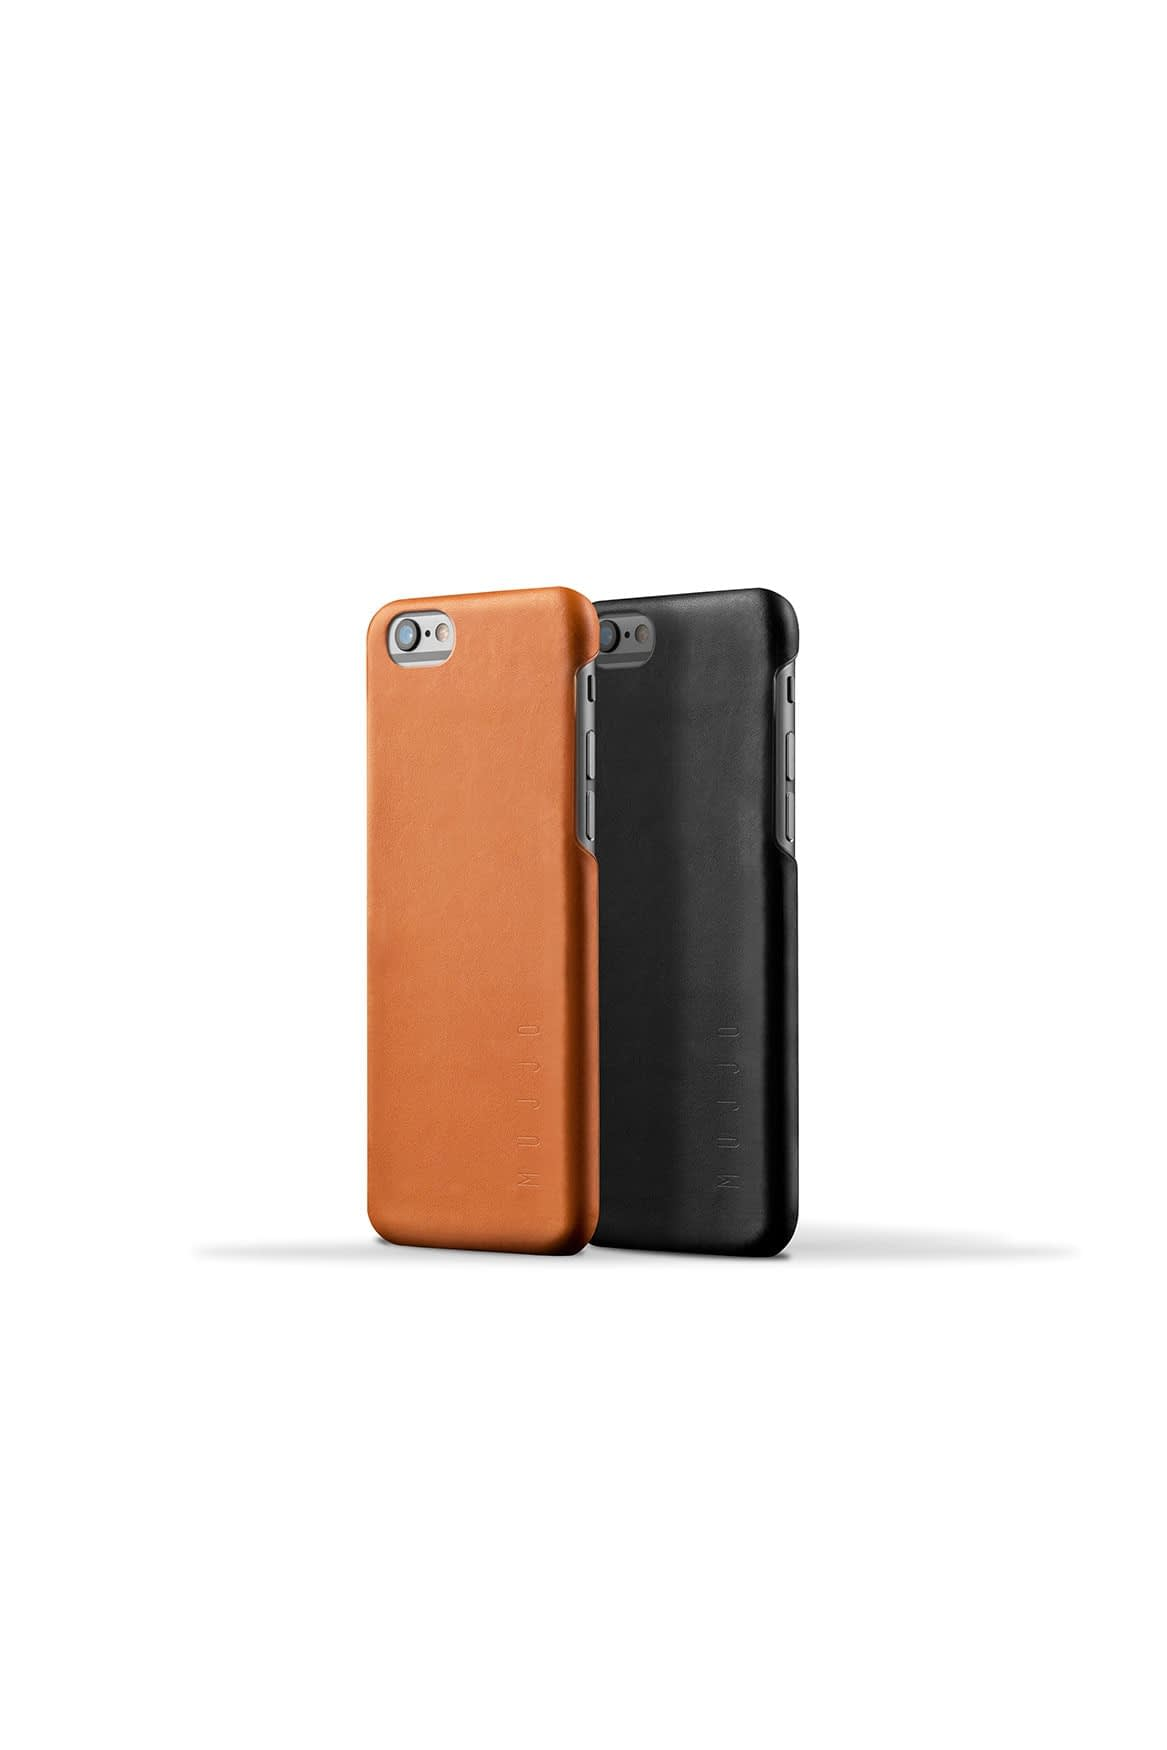 Leather Case for iPhone 6s Tan 004